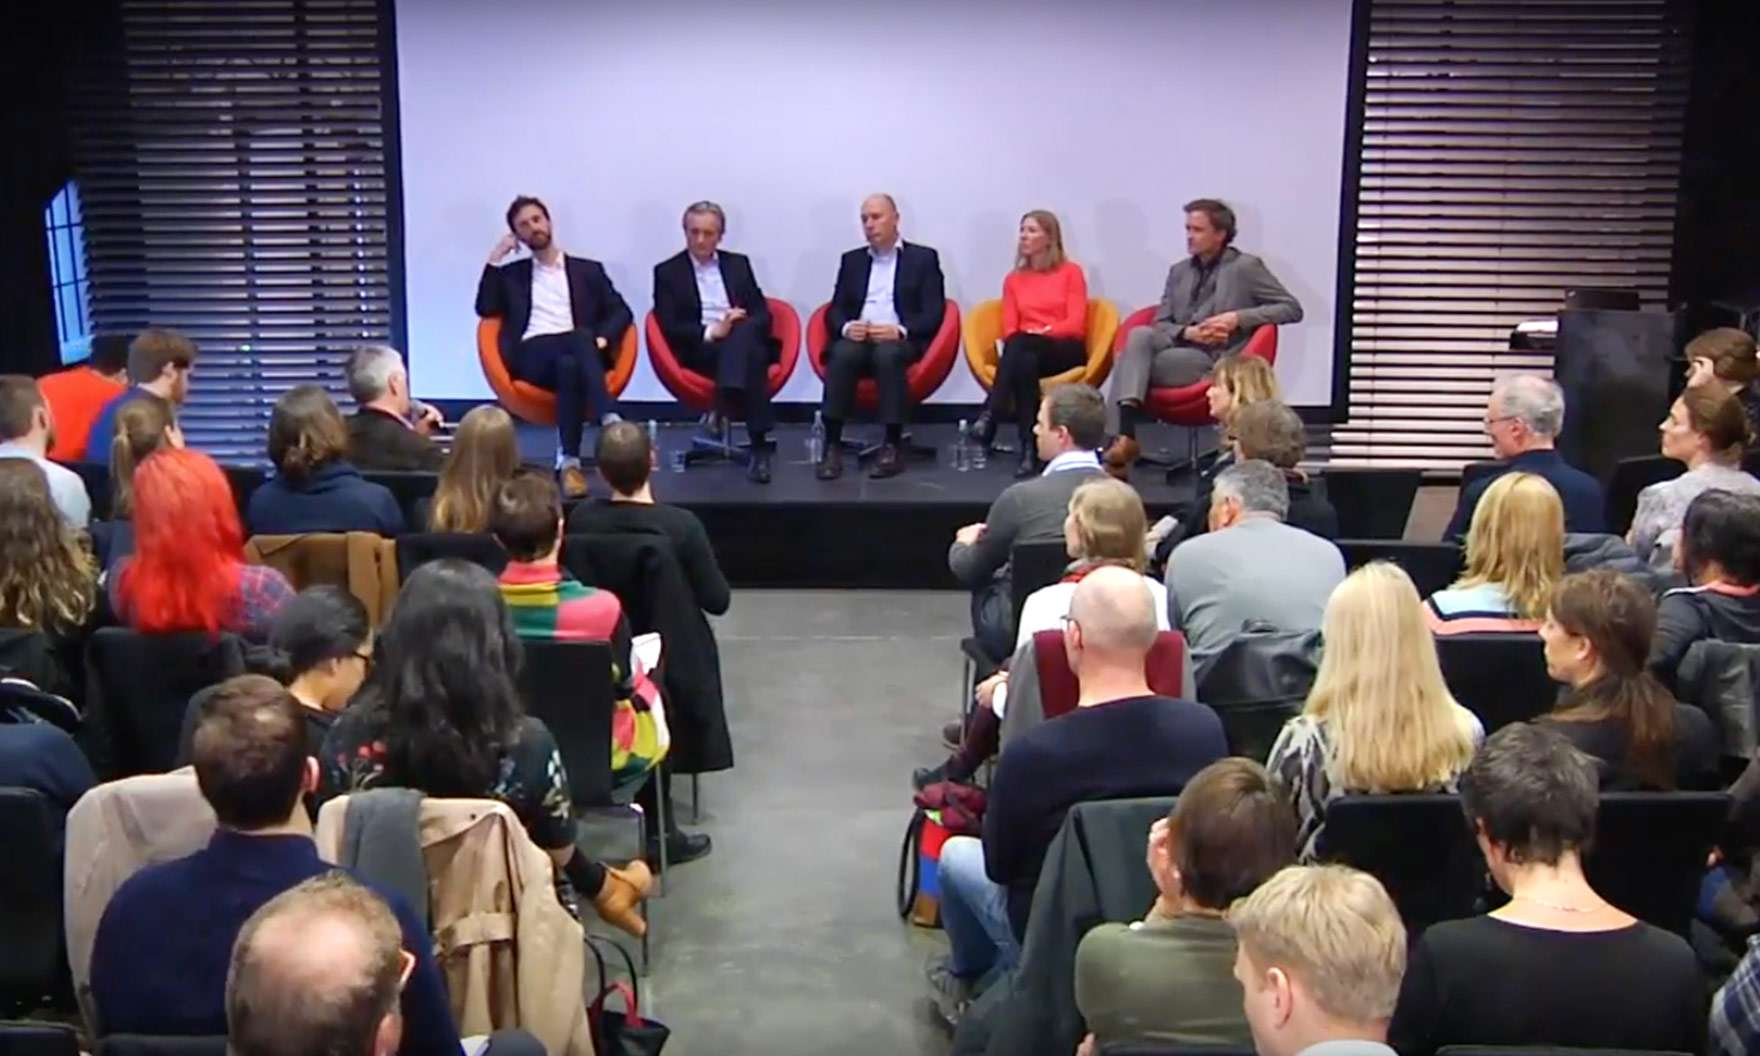 Book Launch video: Service Design for Business, Oslo 3/3